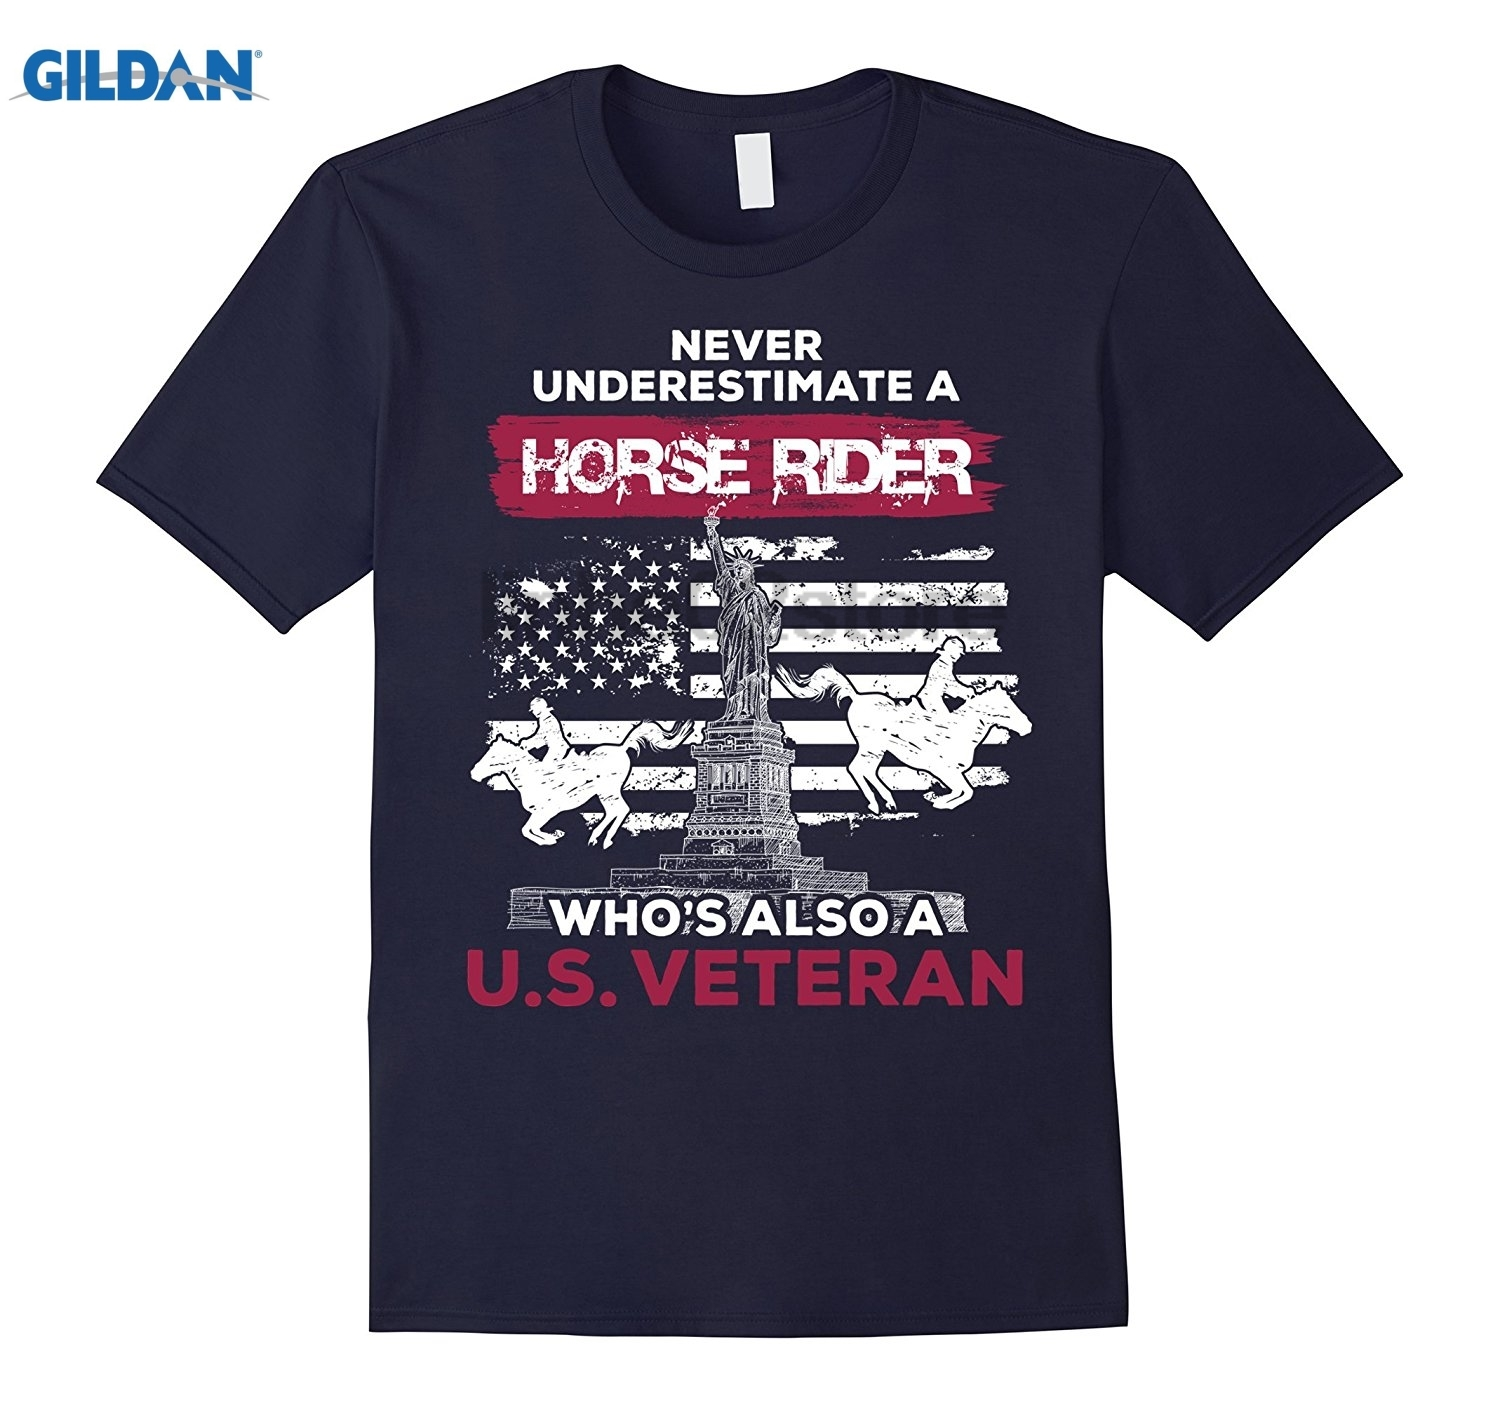 GILDAN Never Underestimate A Horse Rider Whos Also A U.S.Veteran S Dress female T-shirt Womens T-shirt